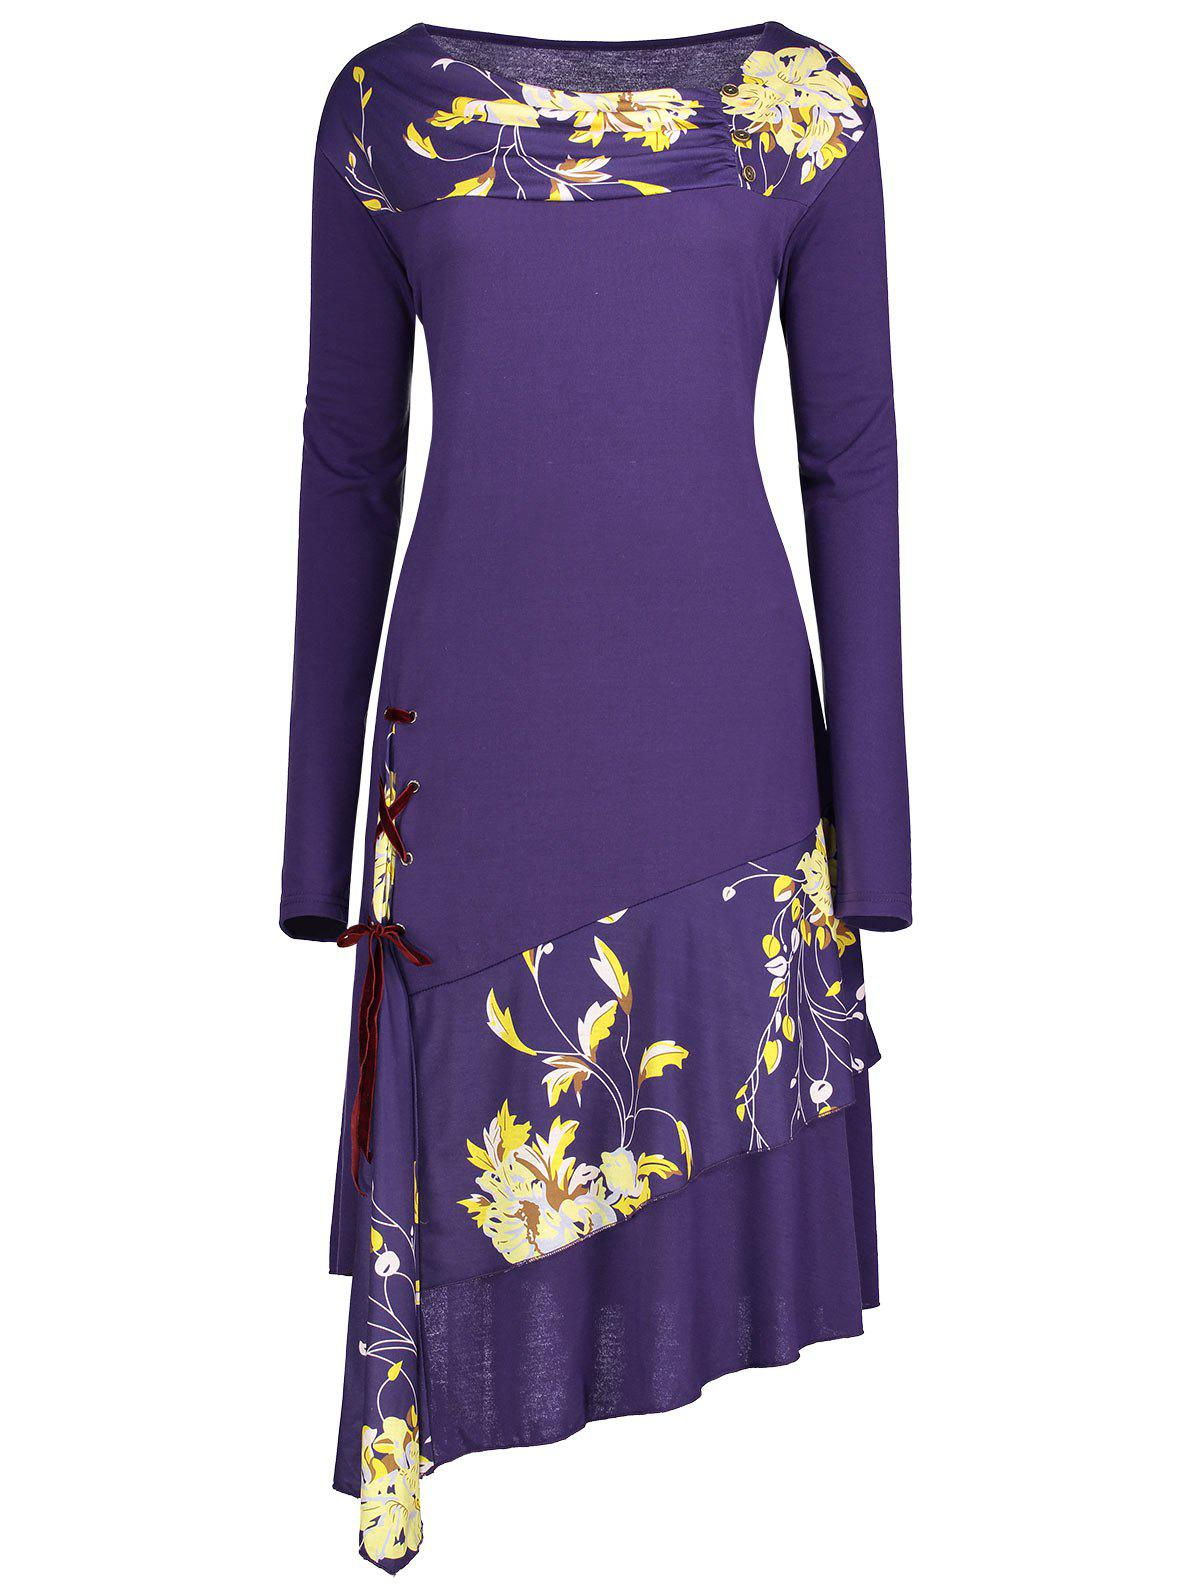 Lace-up Floral Insert Plus Size Long Sleeve DressWOMEN<br><br>Size: 3XL; Color: PURPLE; Style: Cute; Material: Polyester,Spandex; Silhouette: Straight; Dresses Length: Knee-Length; Neckline: Round Collar; Sleeve Length: Long Sleeves; Pattern Type: Floral; With Belt: No; Season: Fall,Spring; Weight: 0.4100kg; Package Contents: 1 x Dress;